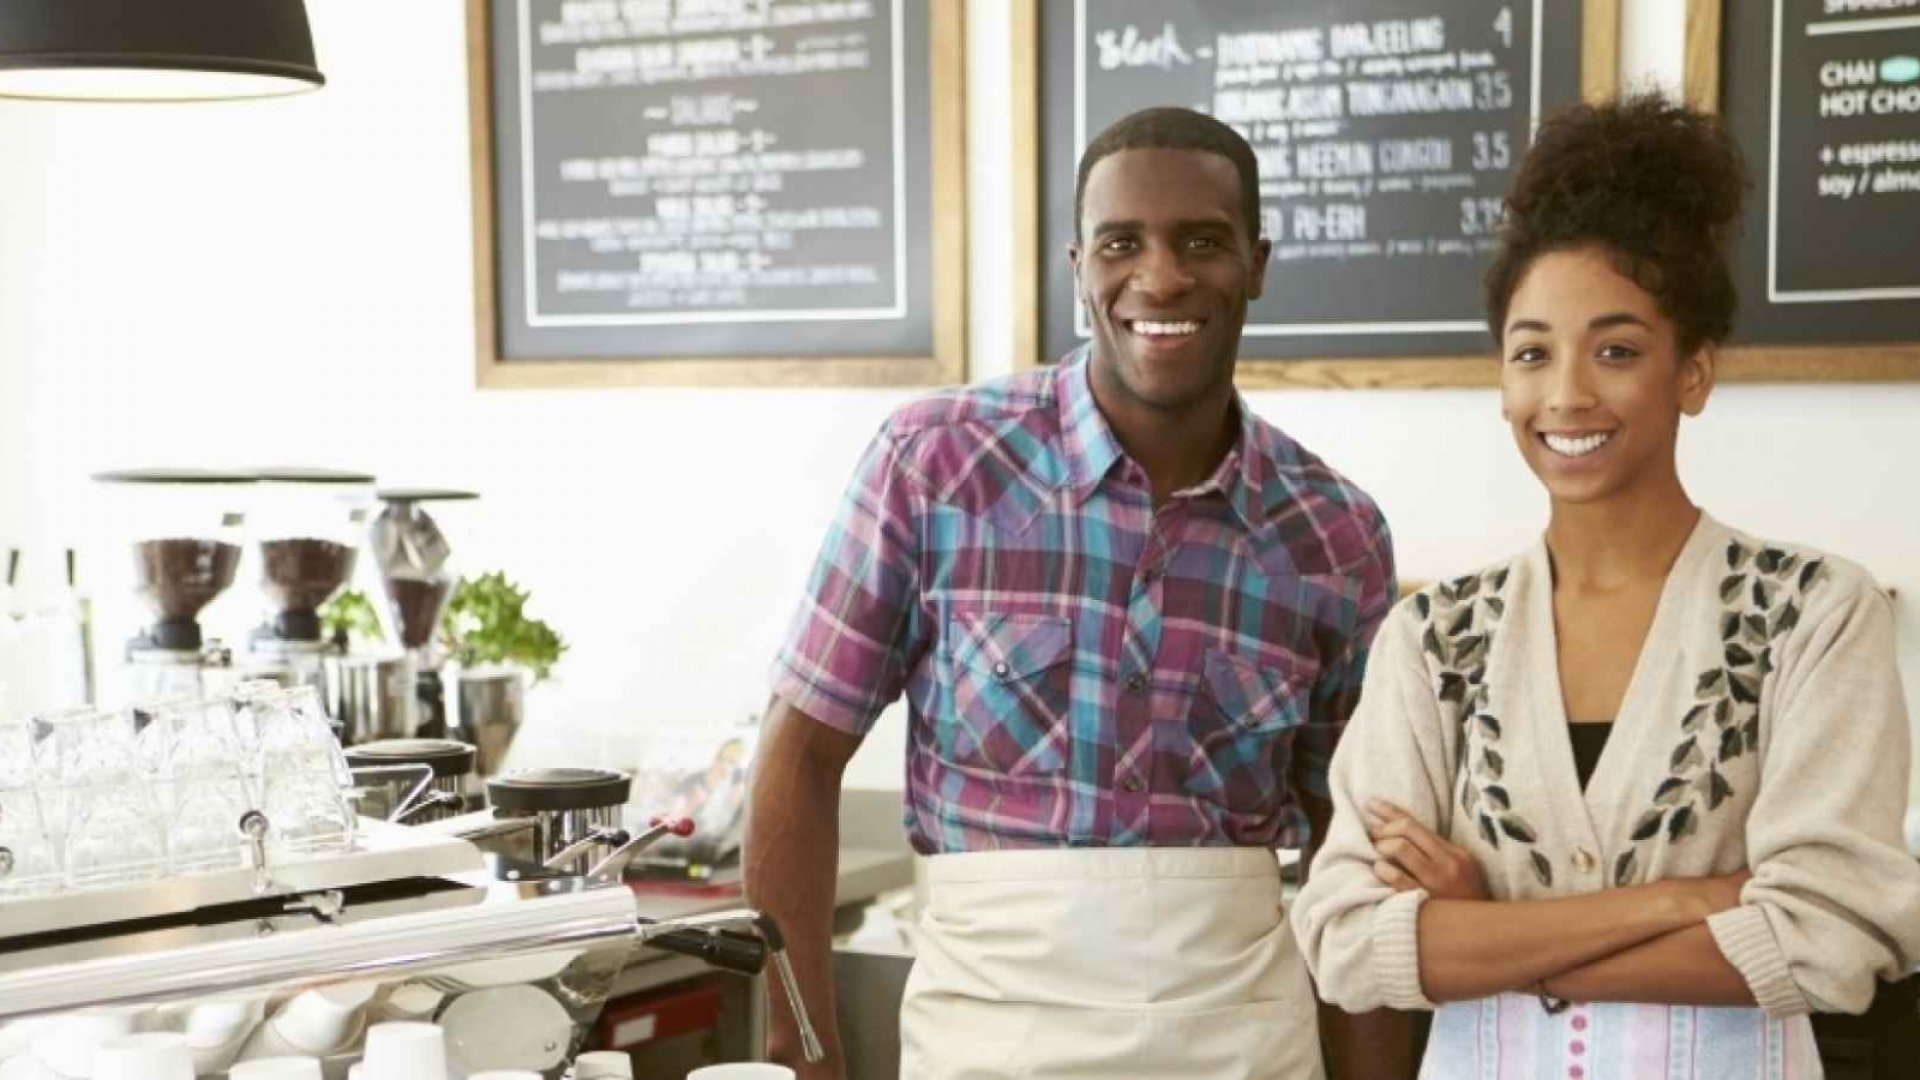 10 Things to Consider When Starting a Family Business